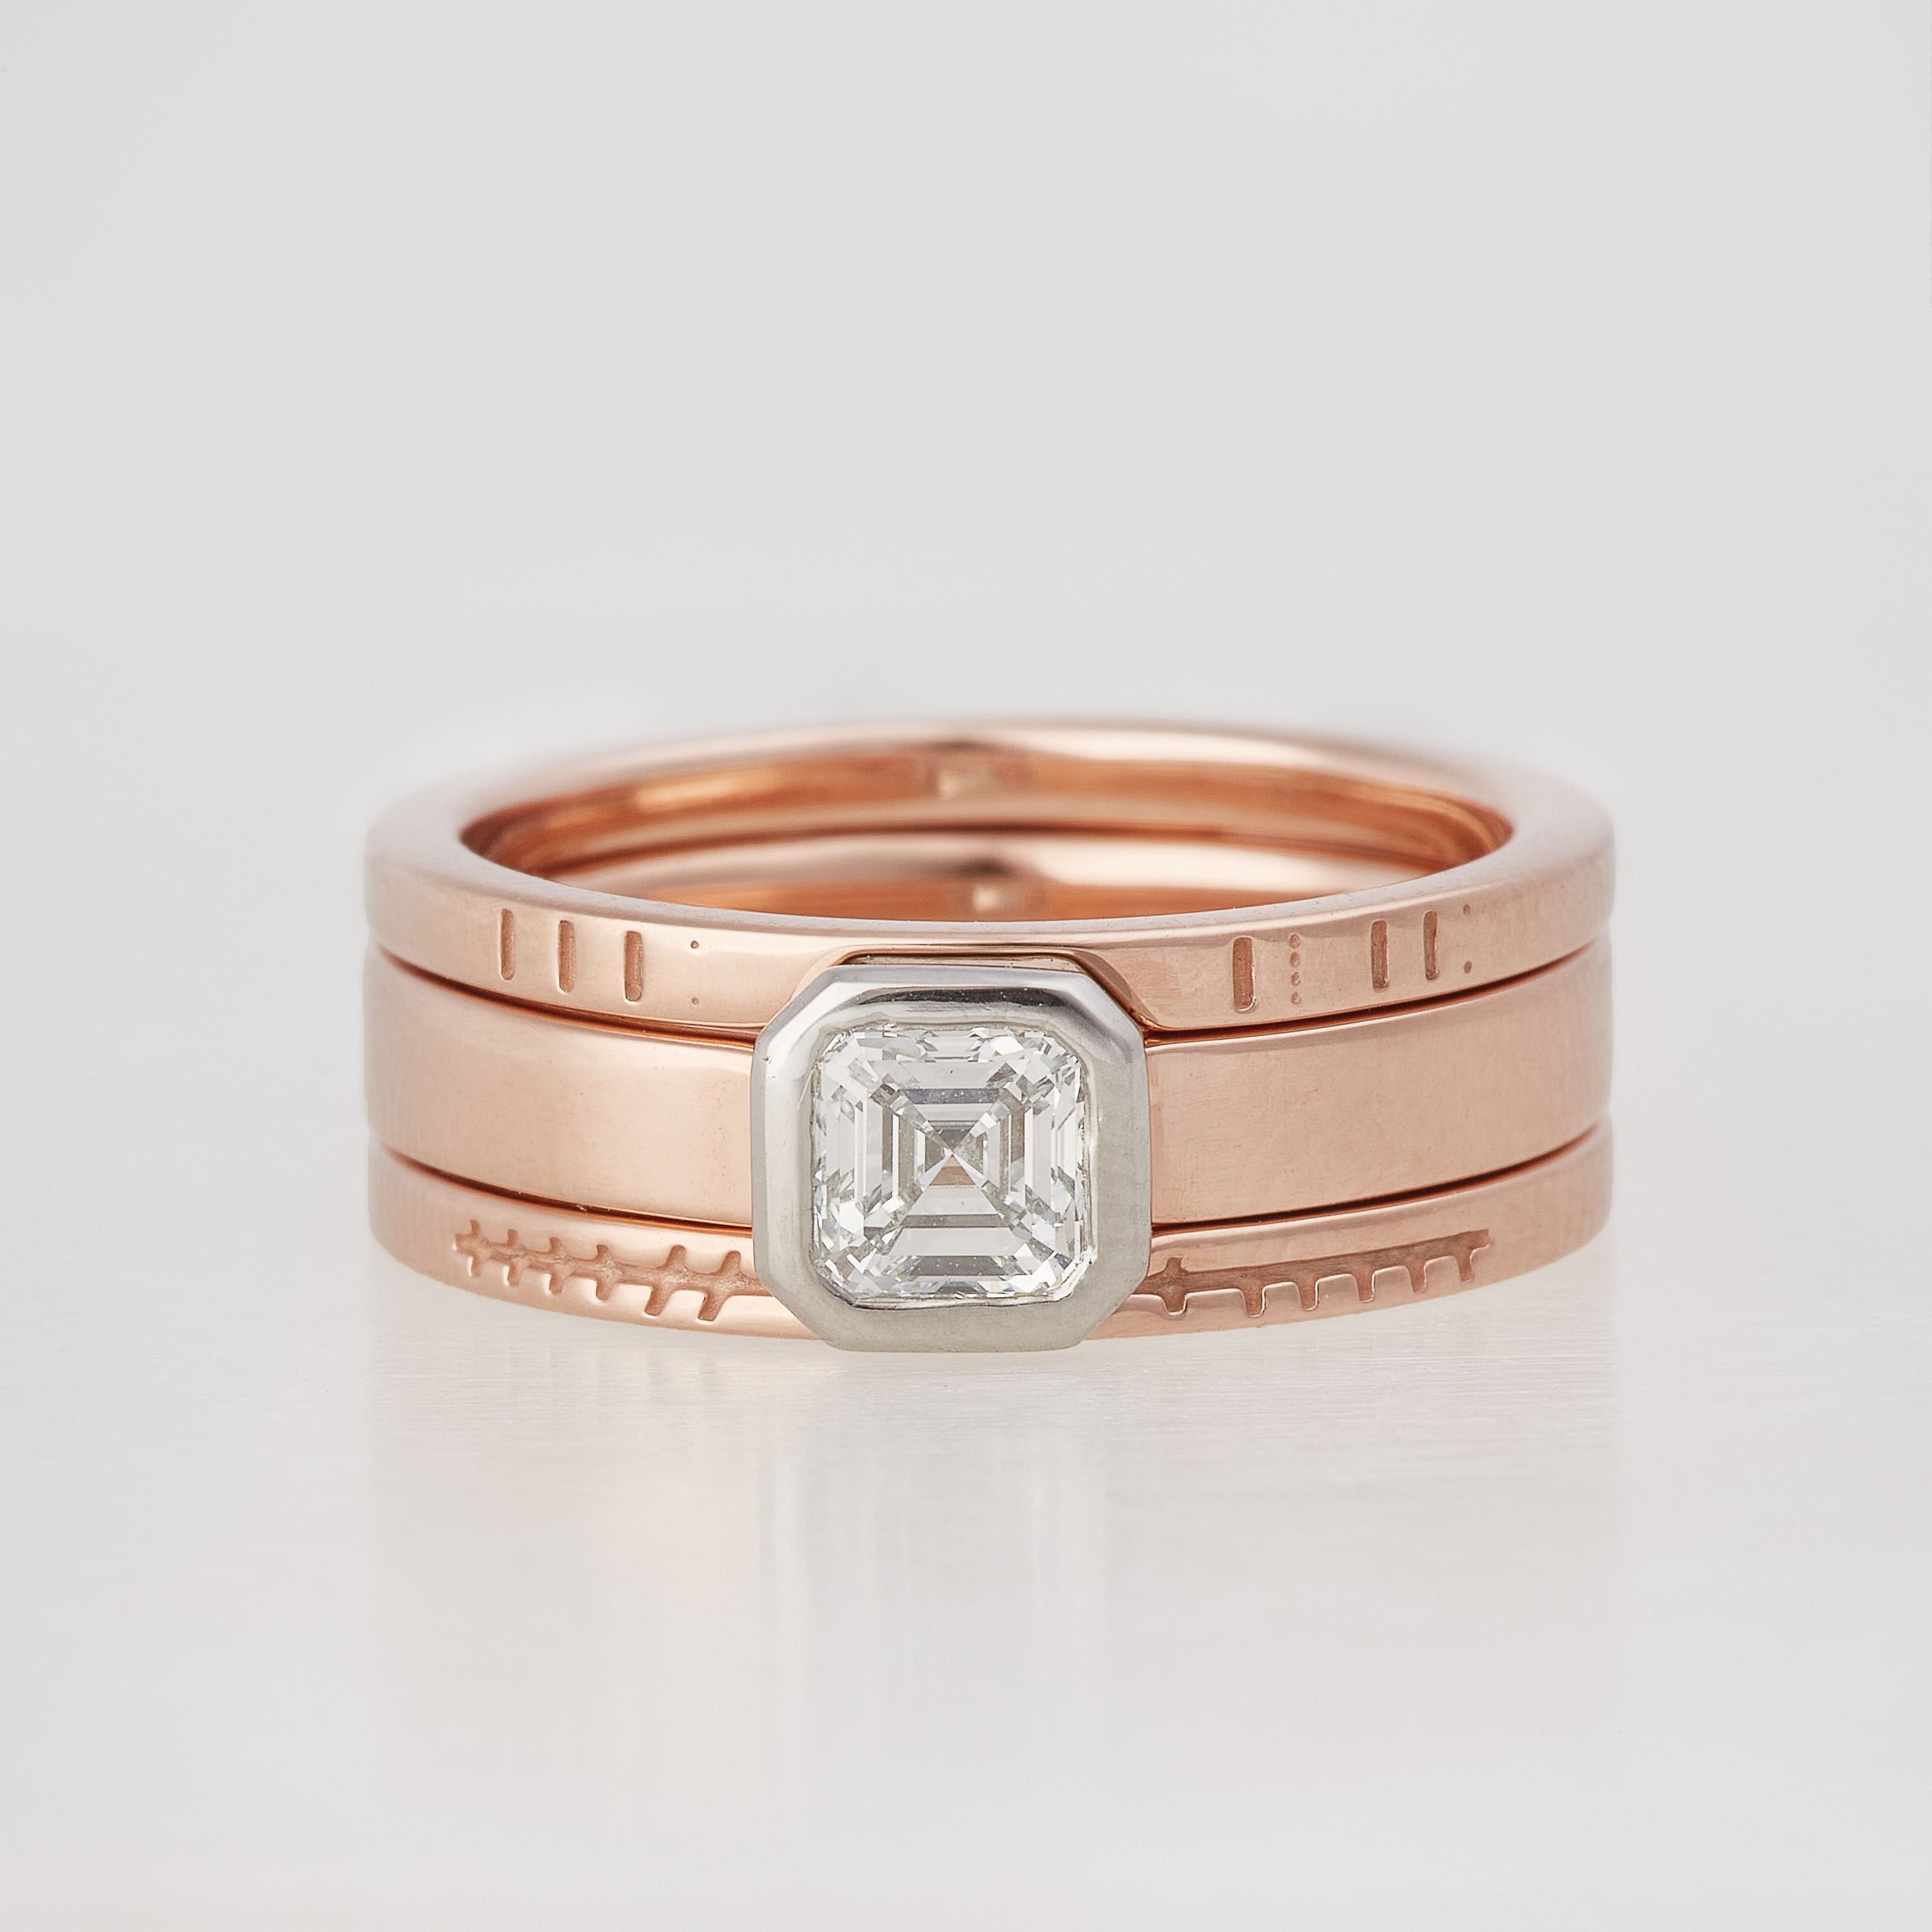 Asscher cut diamond engagement ring in 14K Rose Gold with coordinating wedding band